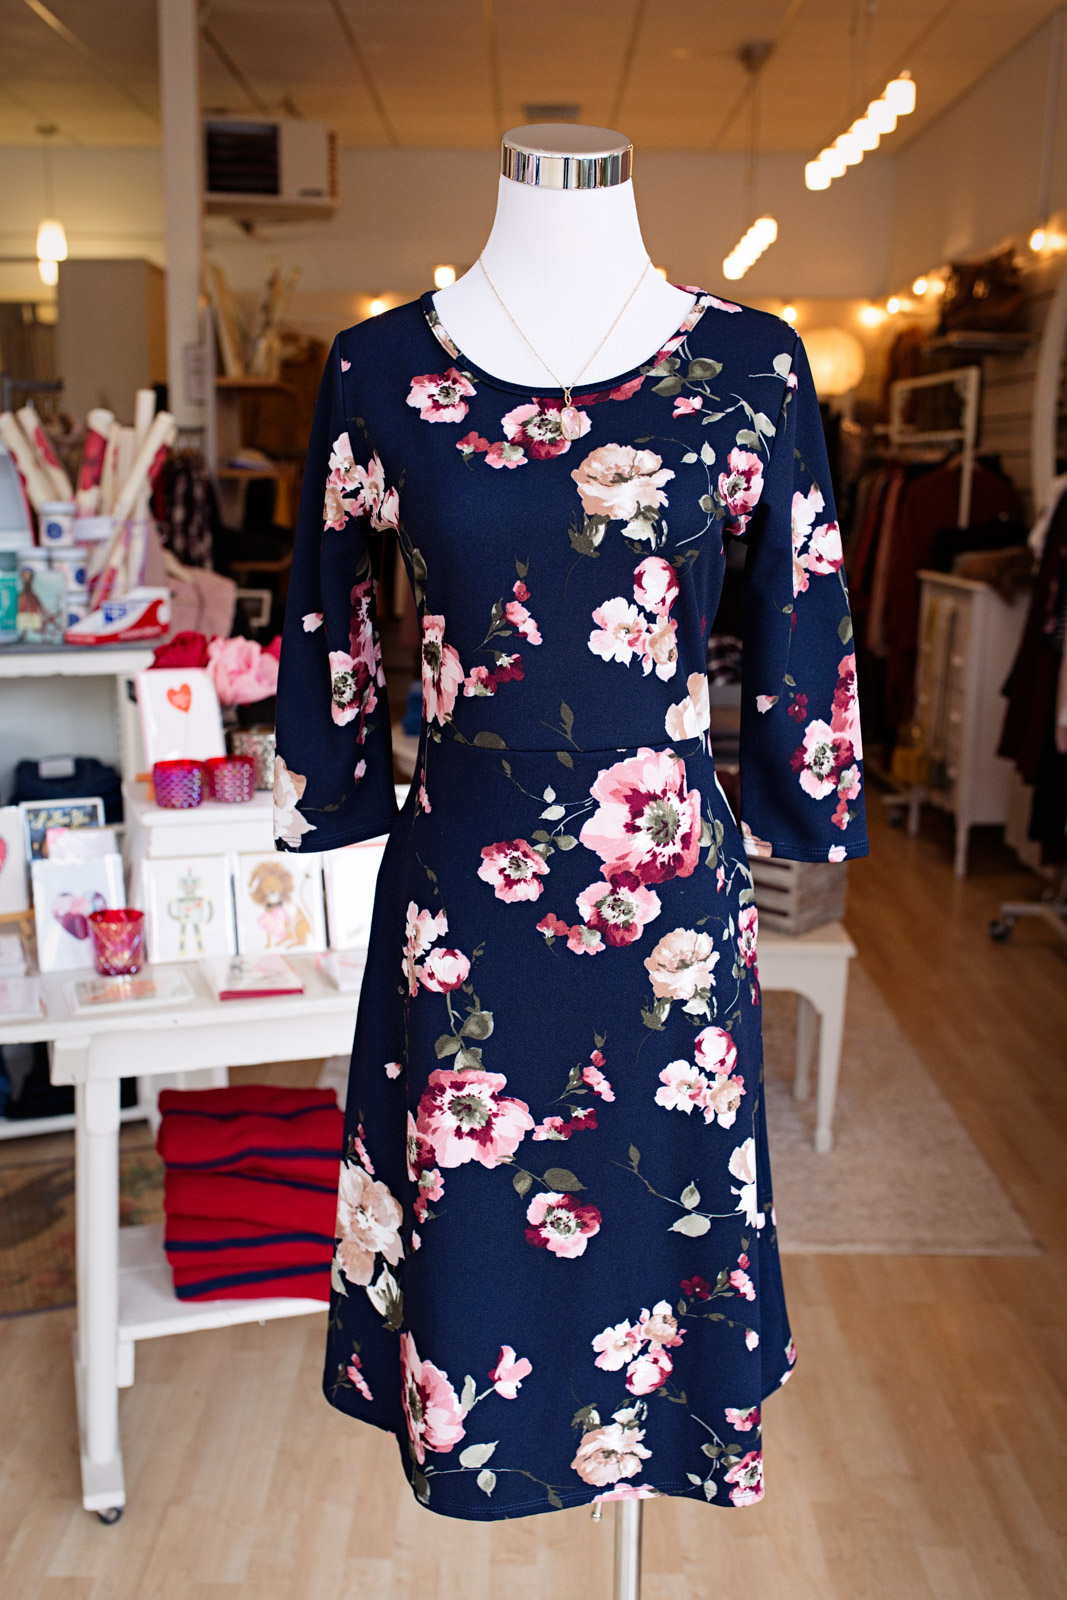 Meadow boutique seattle retail clothing store Yuliya Rae photography branding services-12.jpg